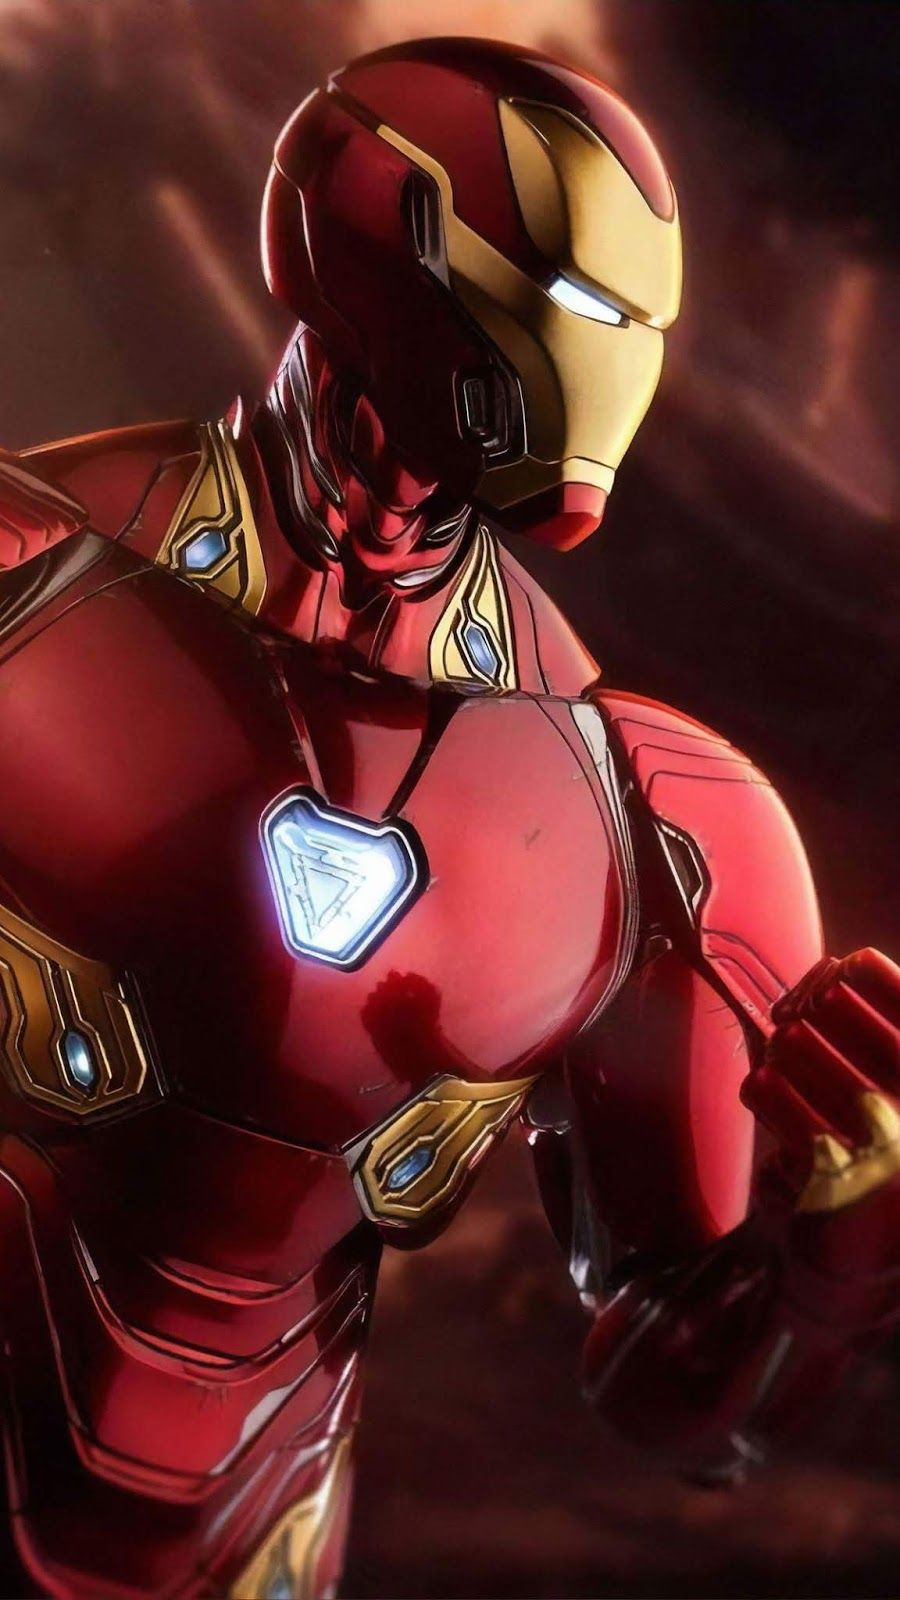 Marvel Hd Wallpapers For Phone In 2020 Iron Man Avengers Iron Man Marvel Iron Man